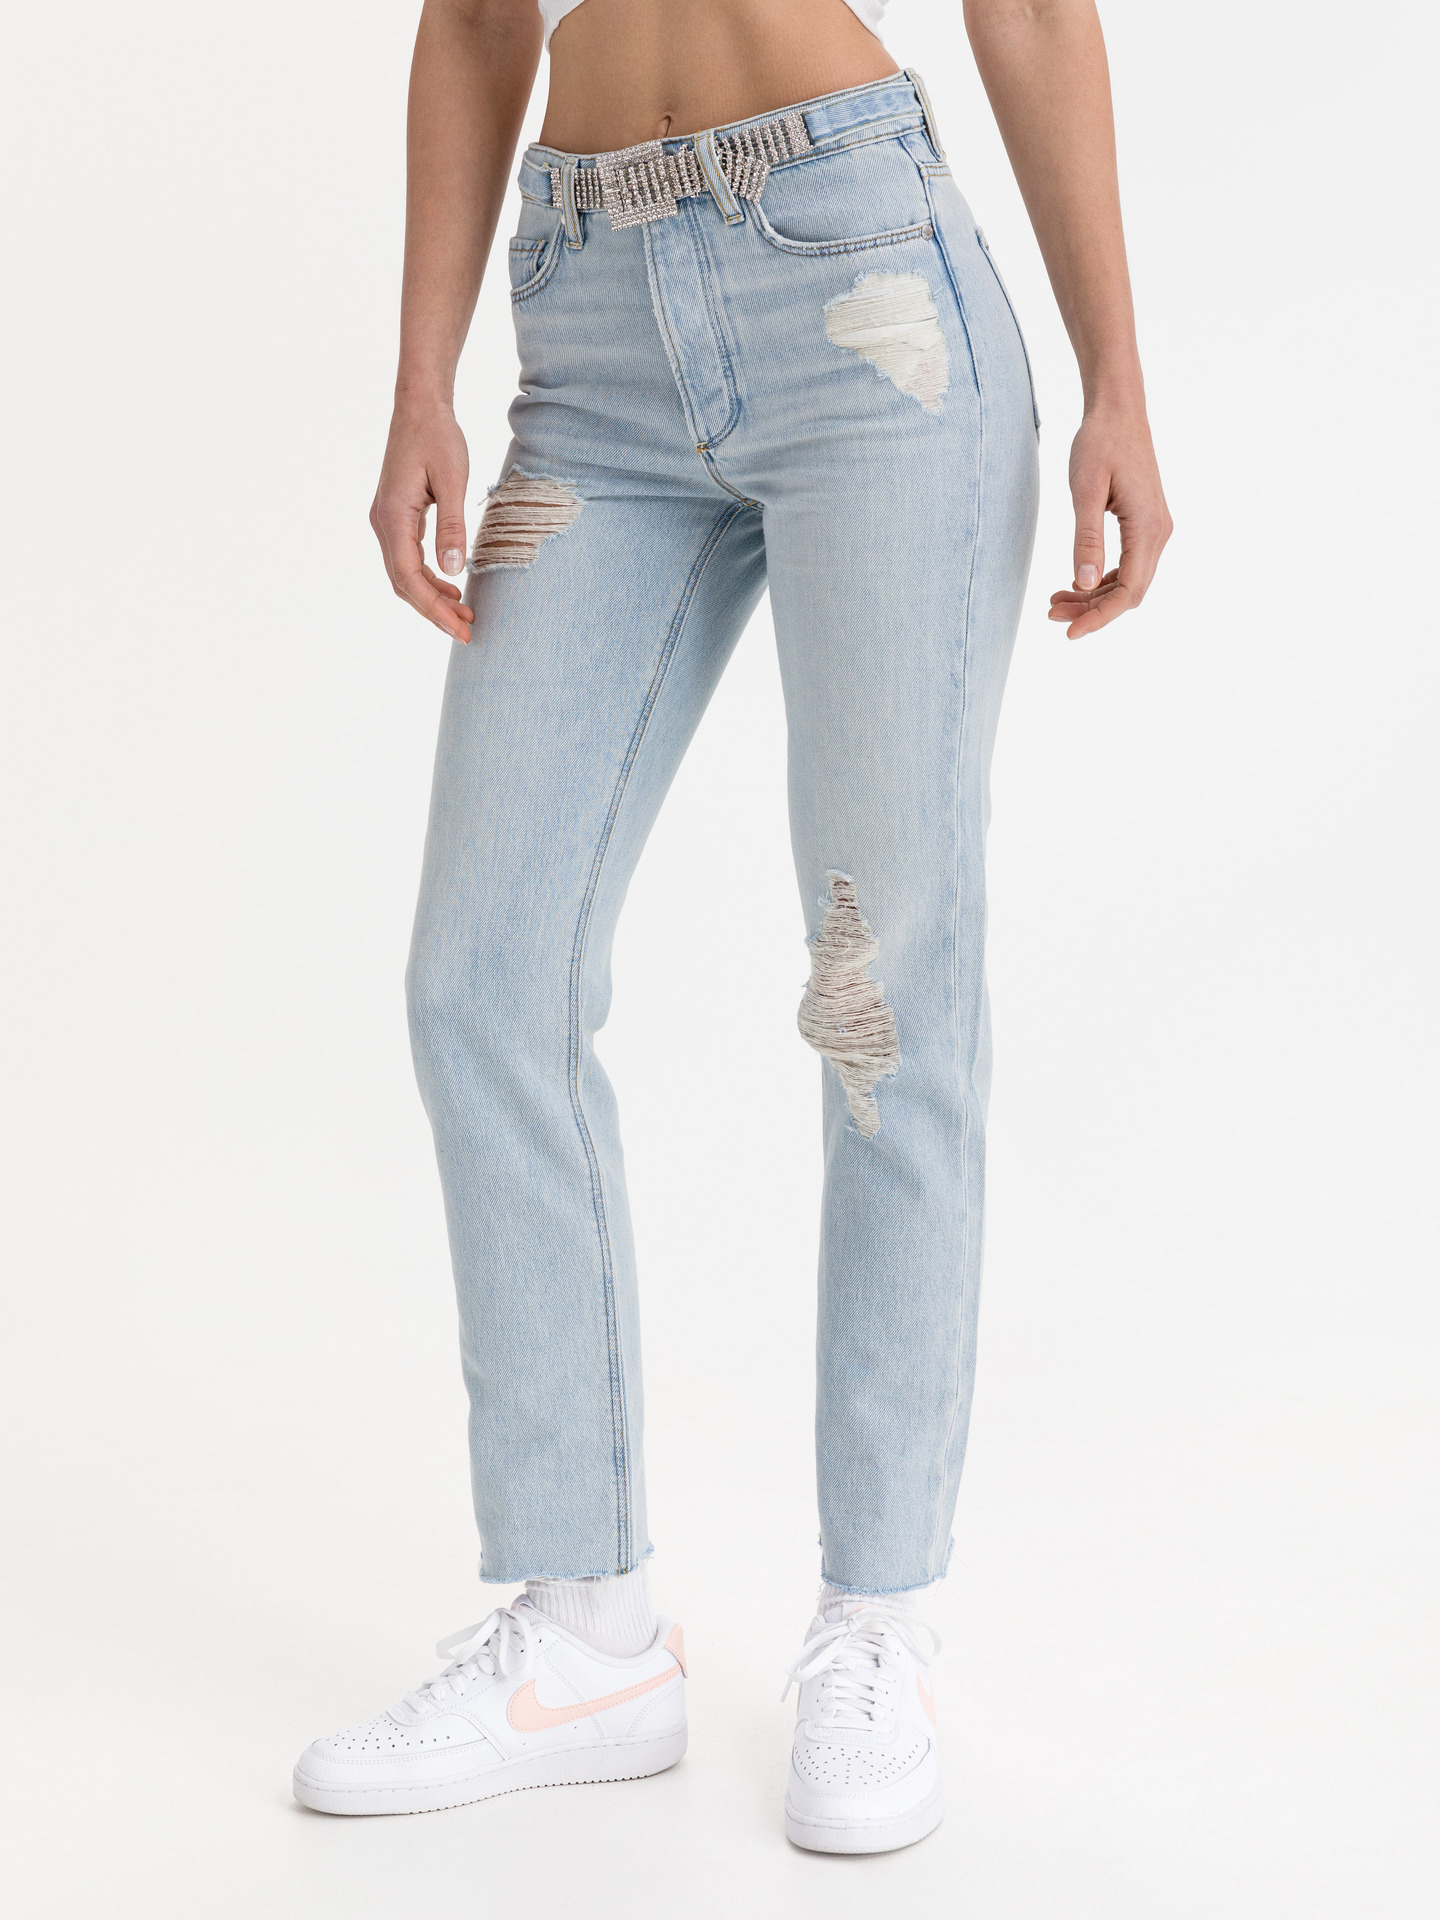 Girly Jeans Guess Modrá